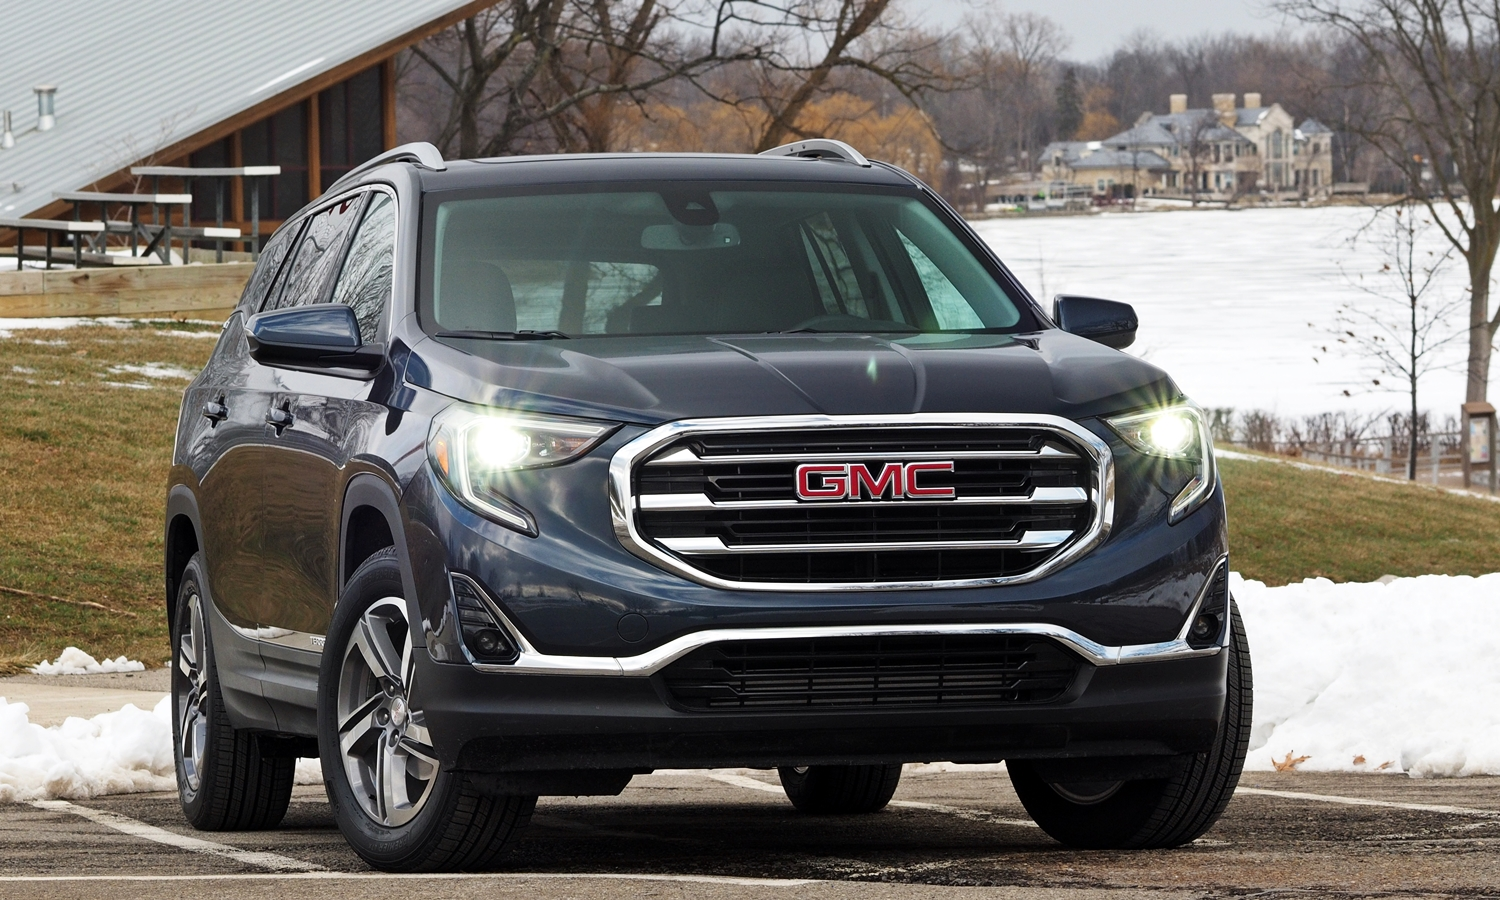 GMC Terrain Photos: 2018 GMC Terrain front view f/8